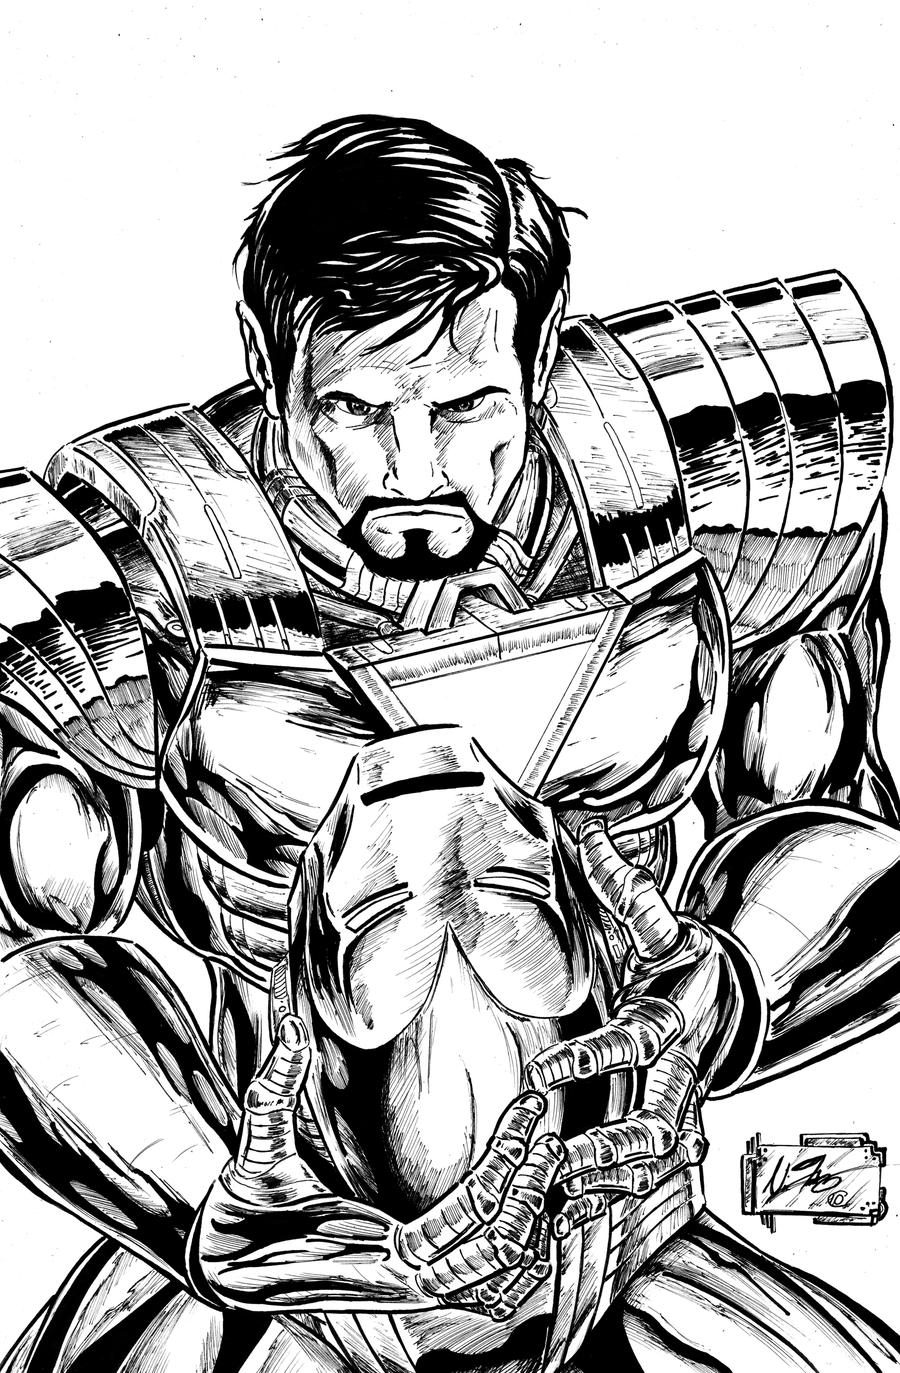 IRON MAN INKS by Lead-Base on DeviantArt